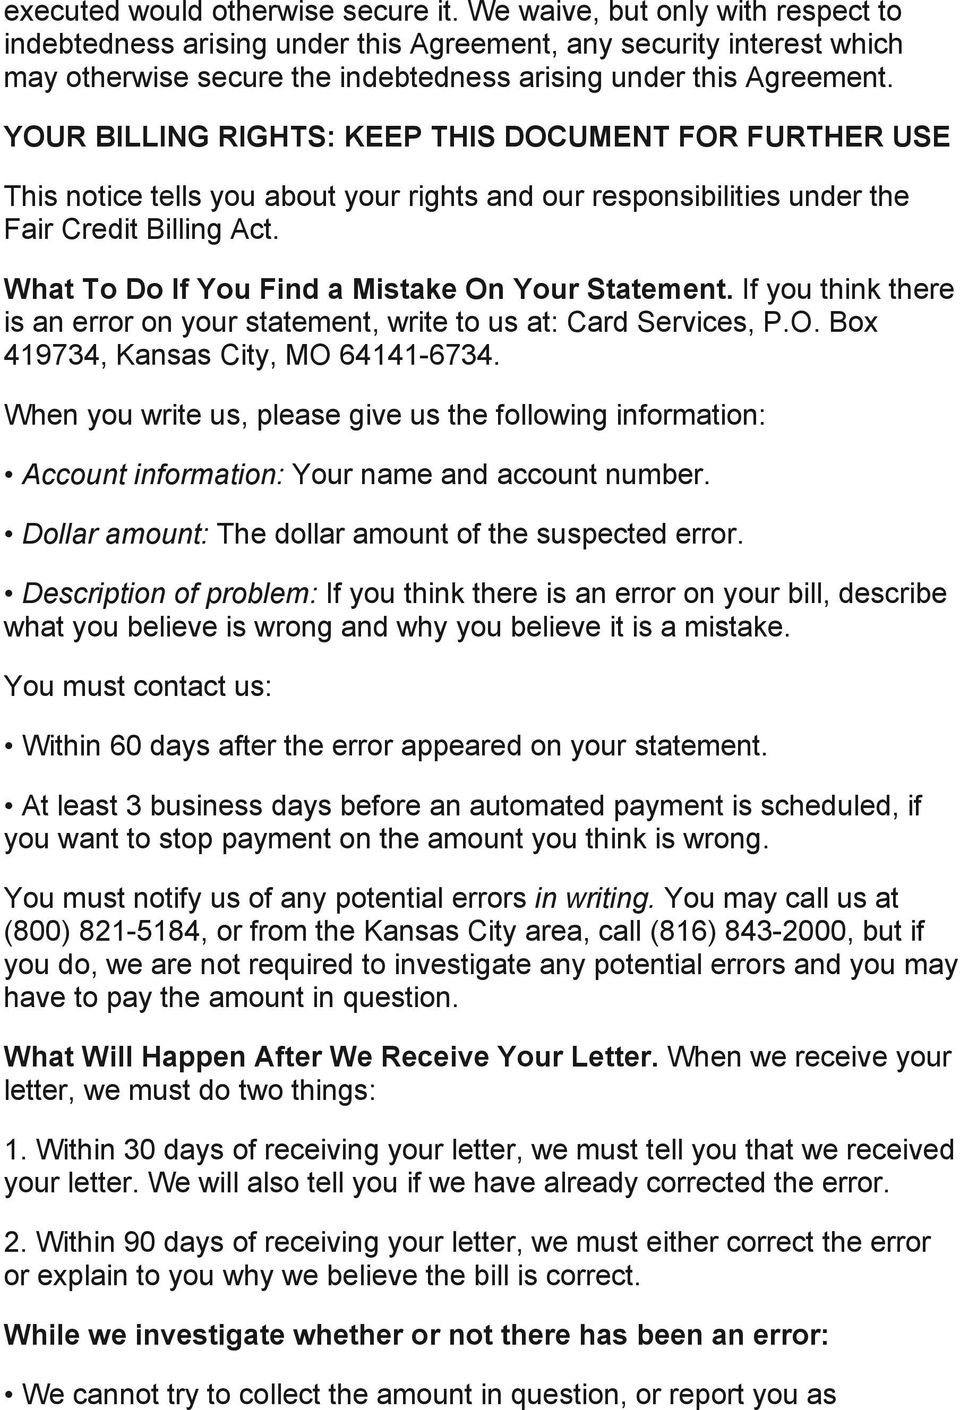 YOUR BILLING RIGHTS: KEEP THIS DOCUMENT FOR FURTHER USE This notice tells you about your rights and our responsibilities under the Fair Credit Billing Act.